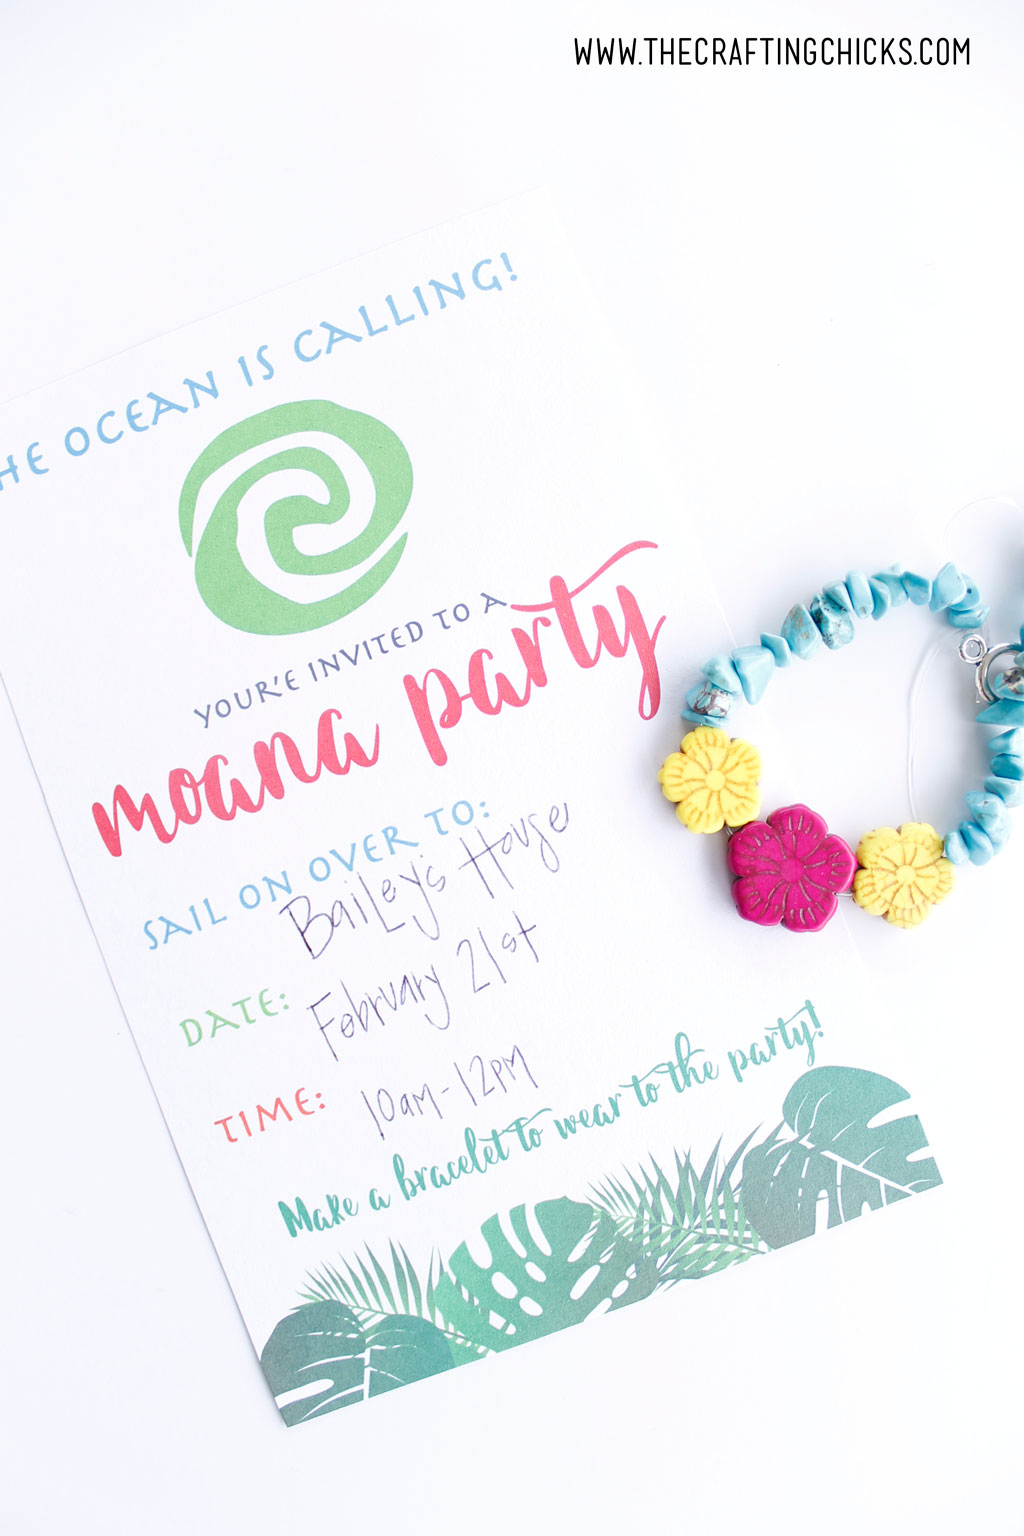 photograph about Moana Sail Printable identified as Moana Bash Invite - The Creating Chicks